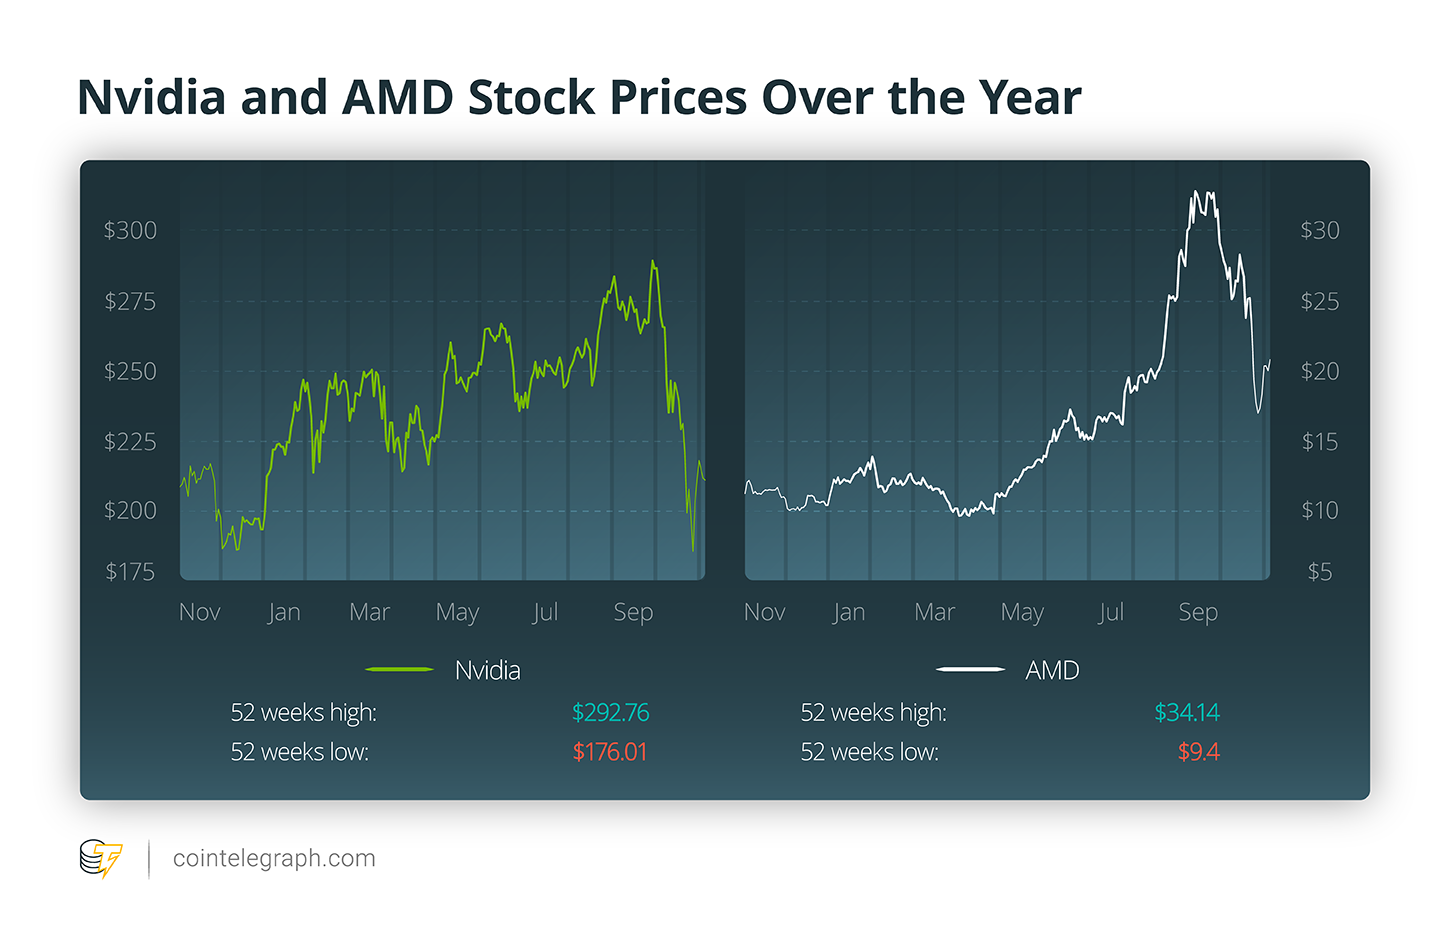 Nvidia and AMD Stock Prices Over the Year